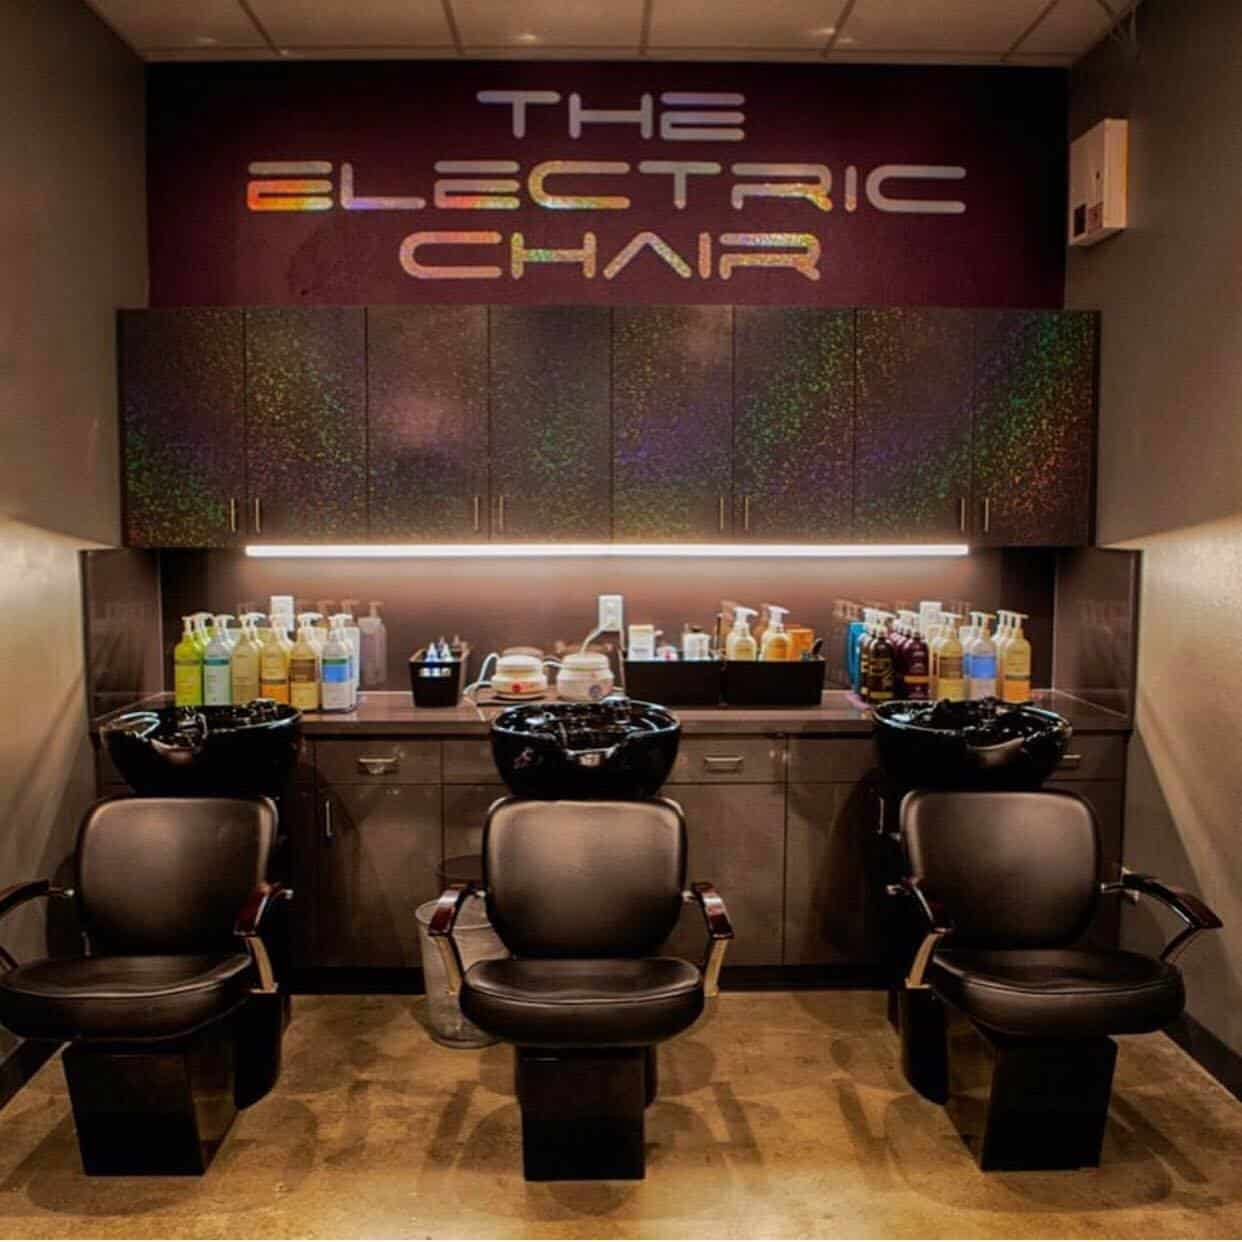 The Electric Chair Salon